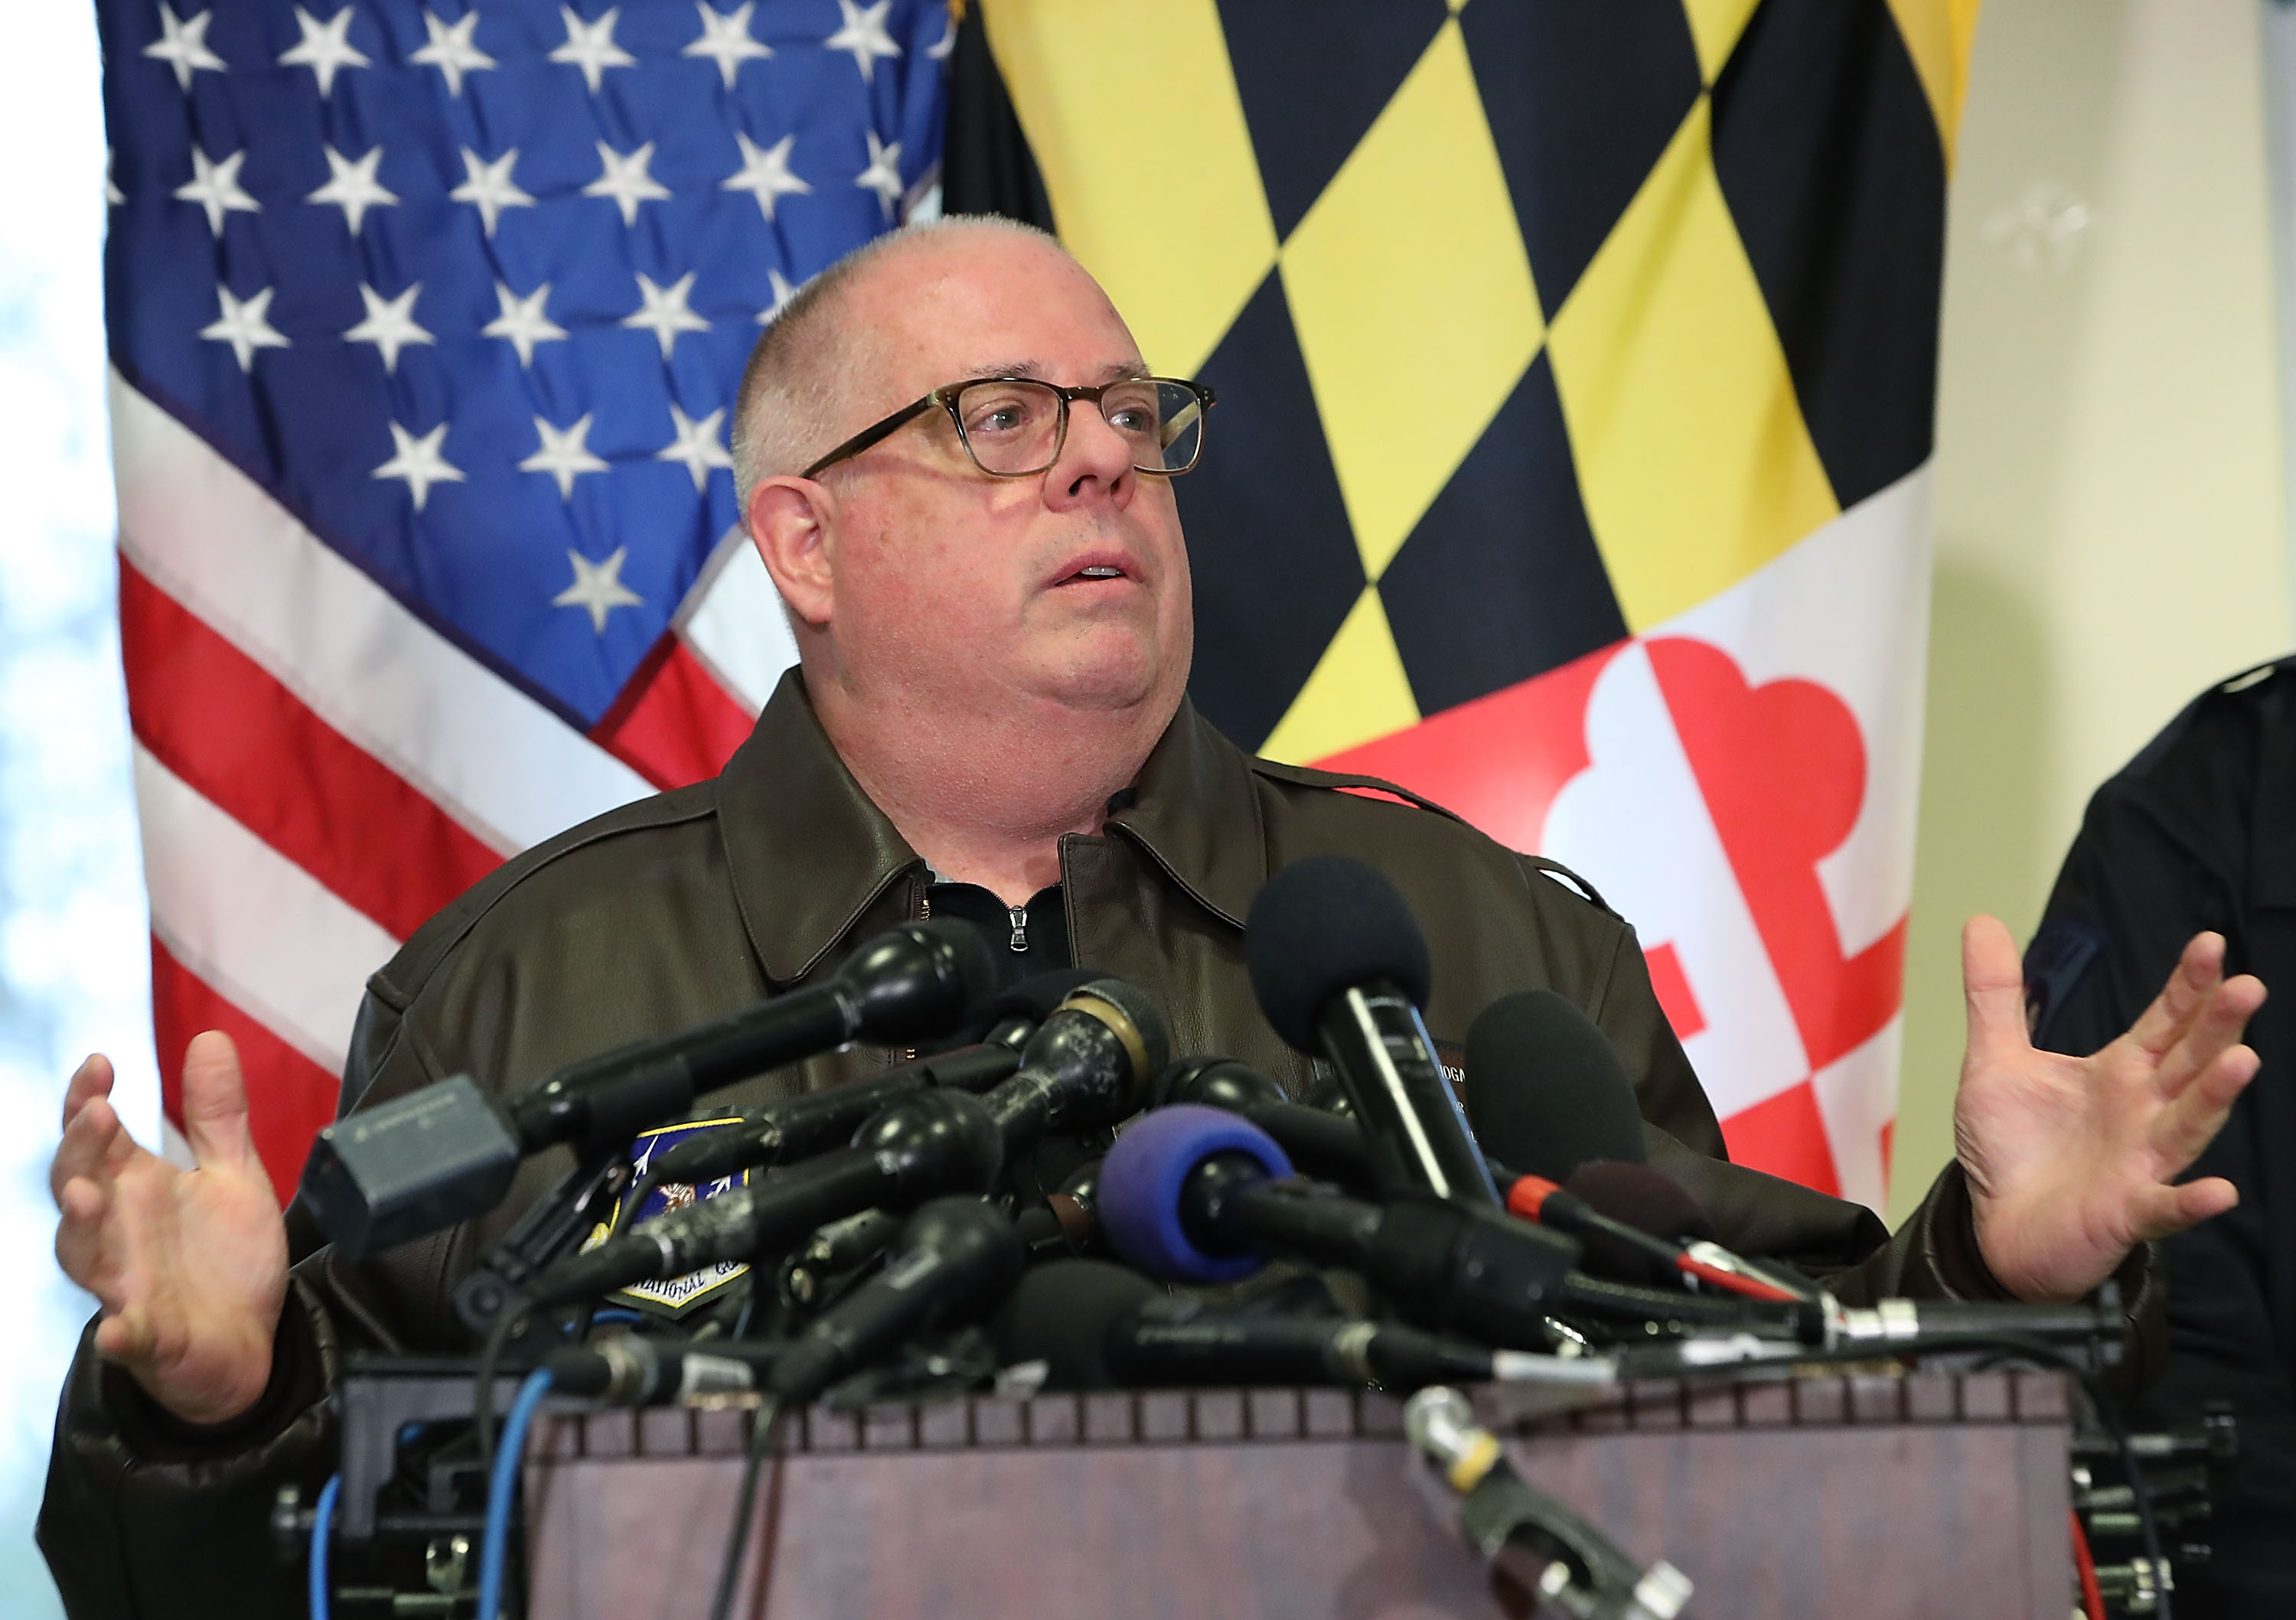 The governors of Maryland, Virginia, and other states are pulling National Guard troops from the border